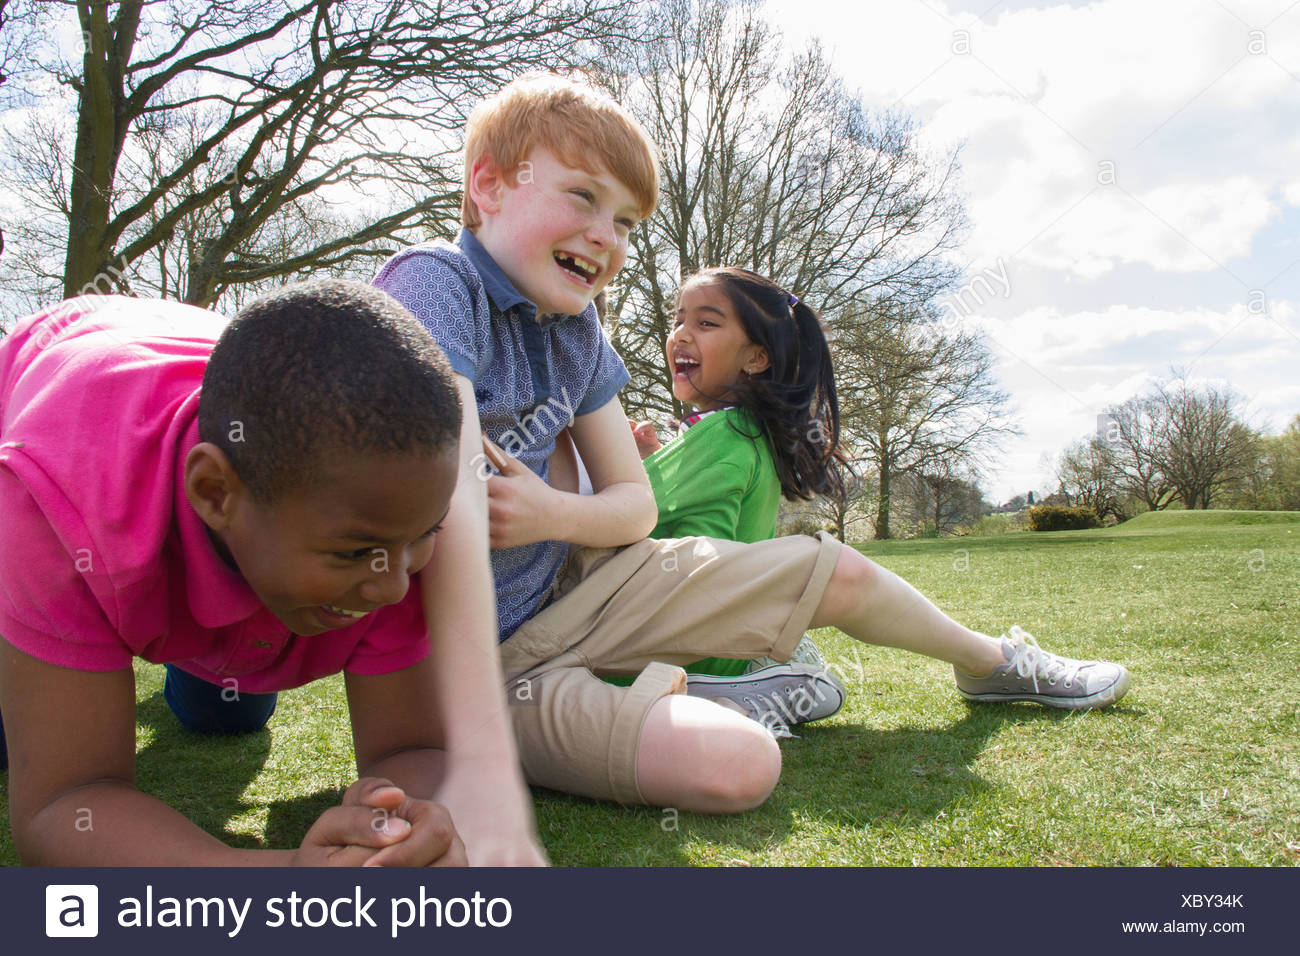 Two boys and a girl playing in field - Stock Image